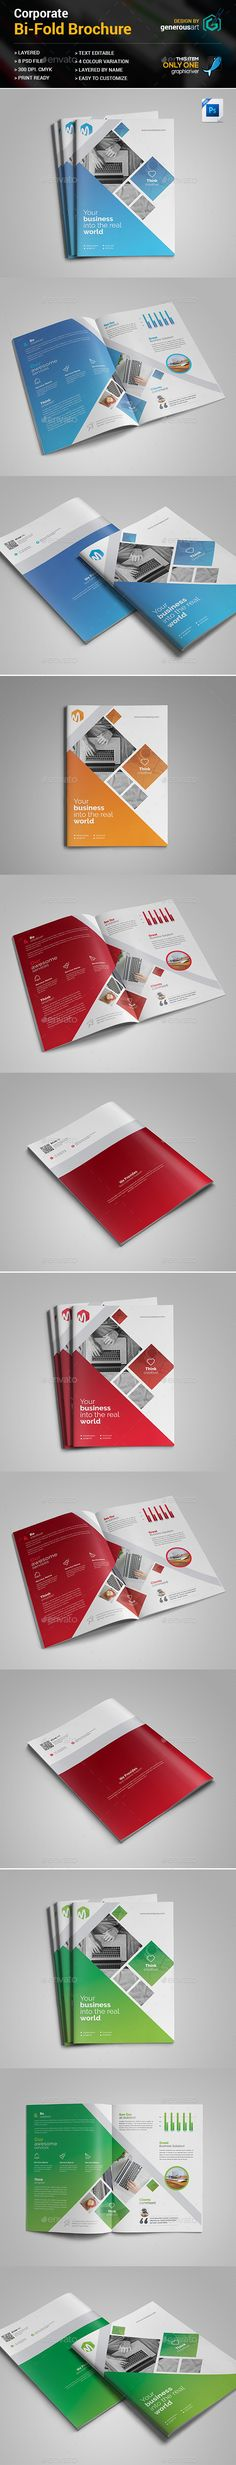 #Bi-Fold Brochure - #Corporate #Brochures Download here: https://graphicriver.net/item/bifold-brochure/19160097?ref=alena994